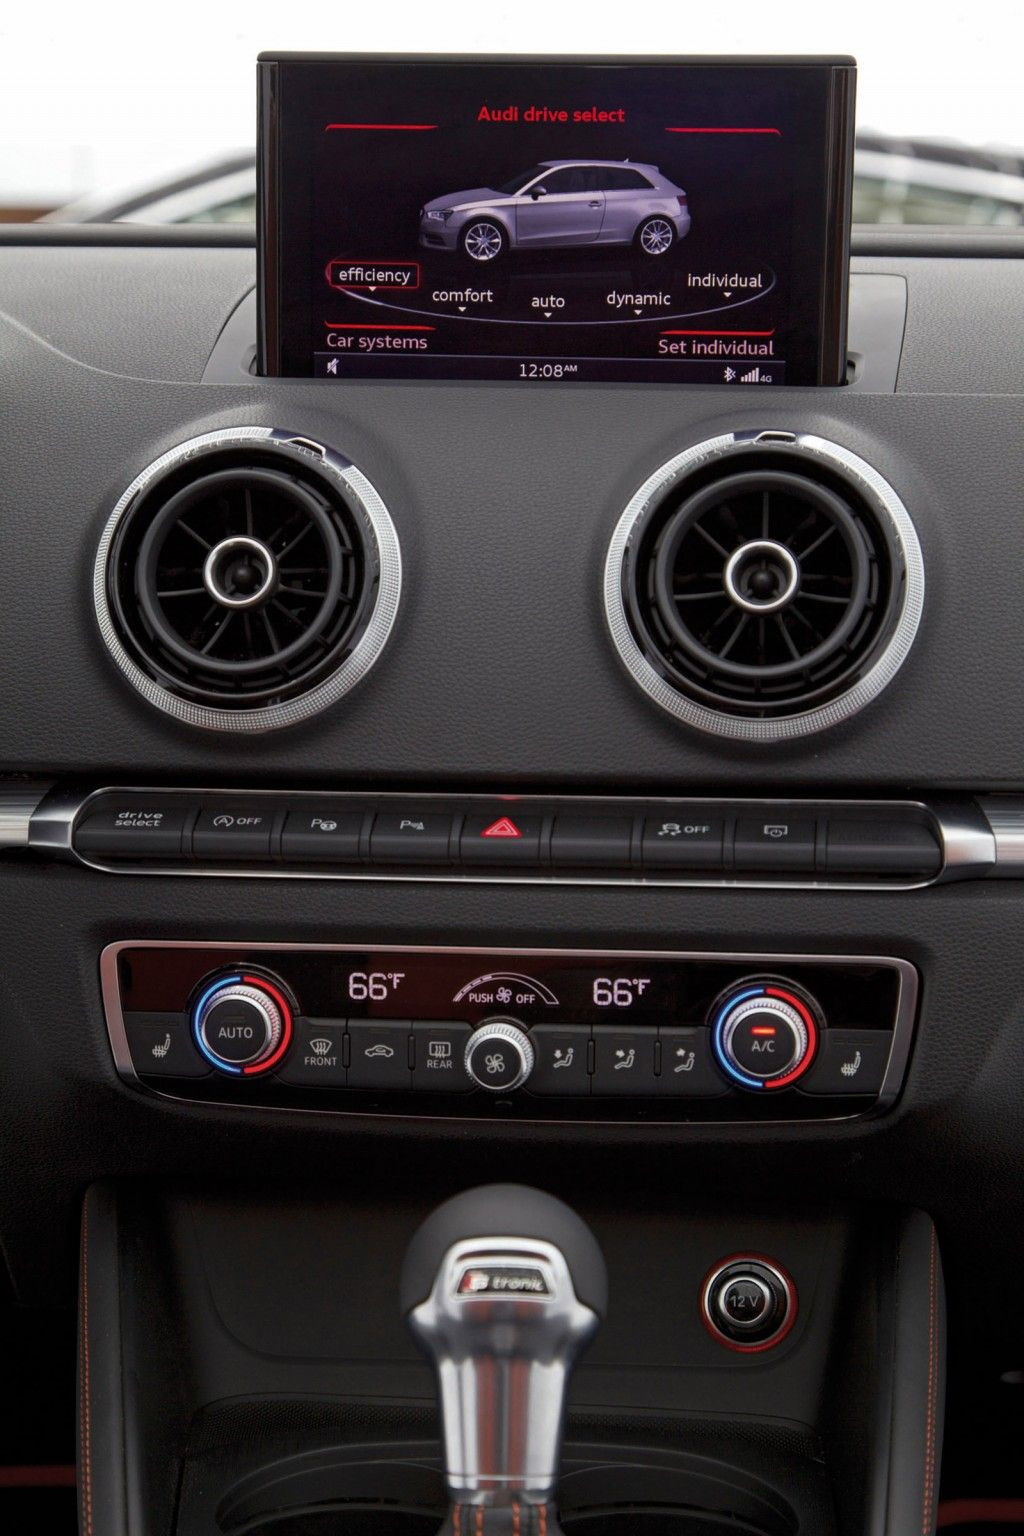 audi a3 radio audi audi a3 audi et vehicles. Black Bedroom Furniture Sets. Home Design Ideas